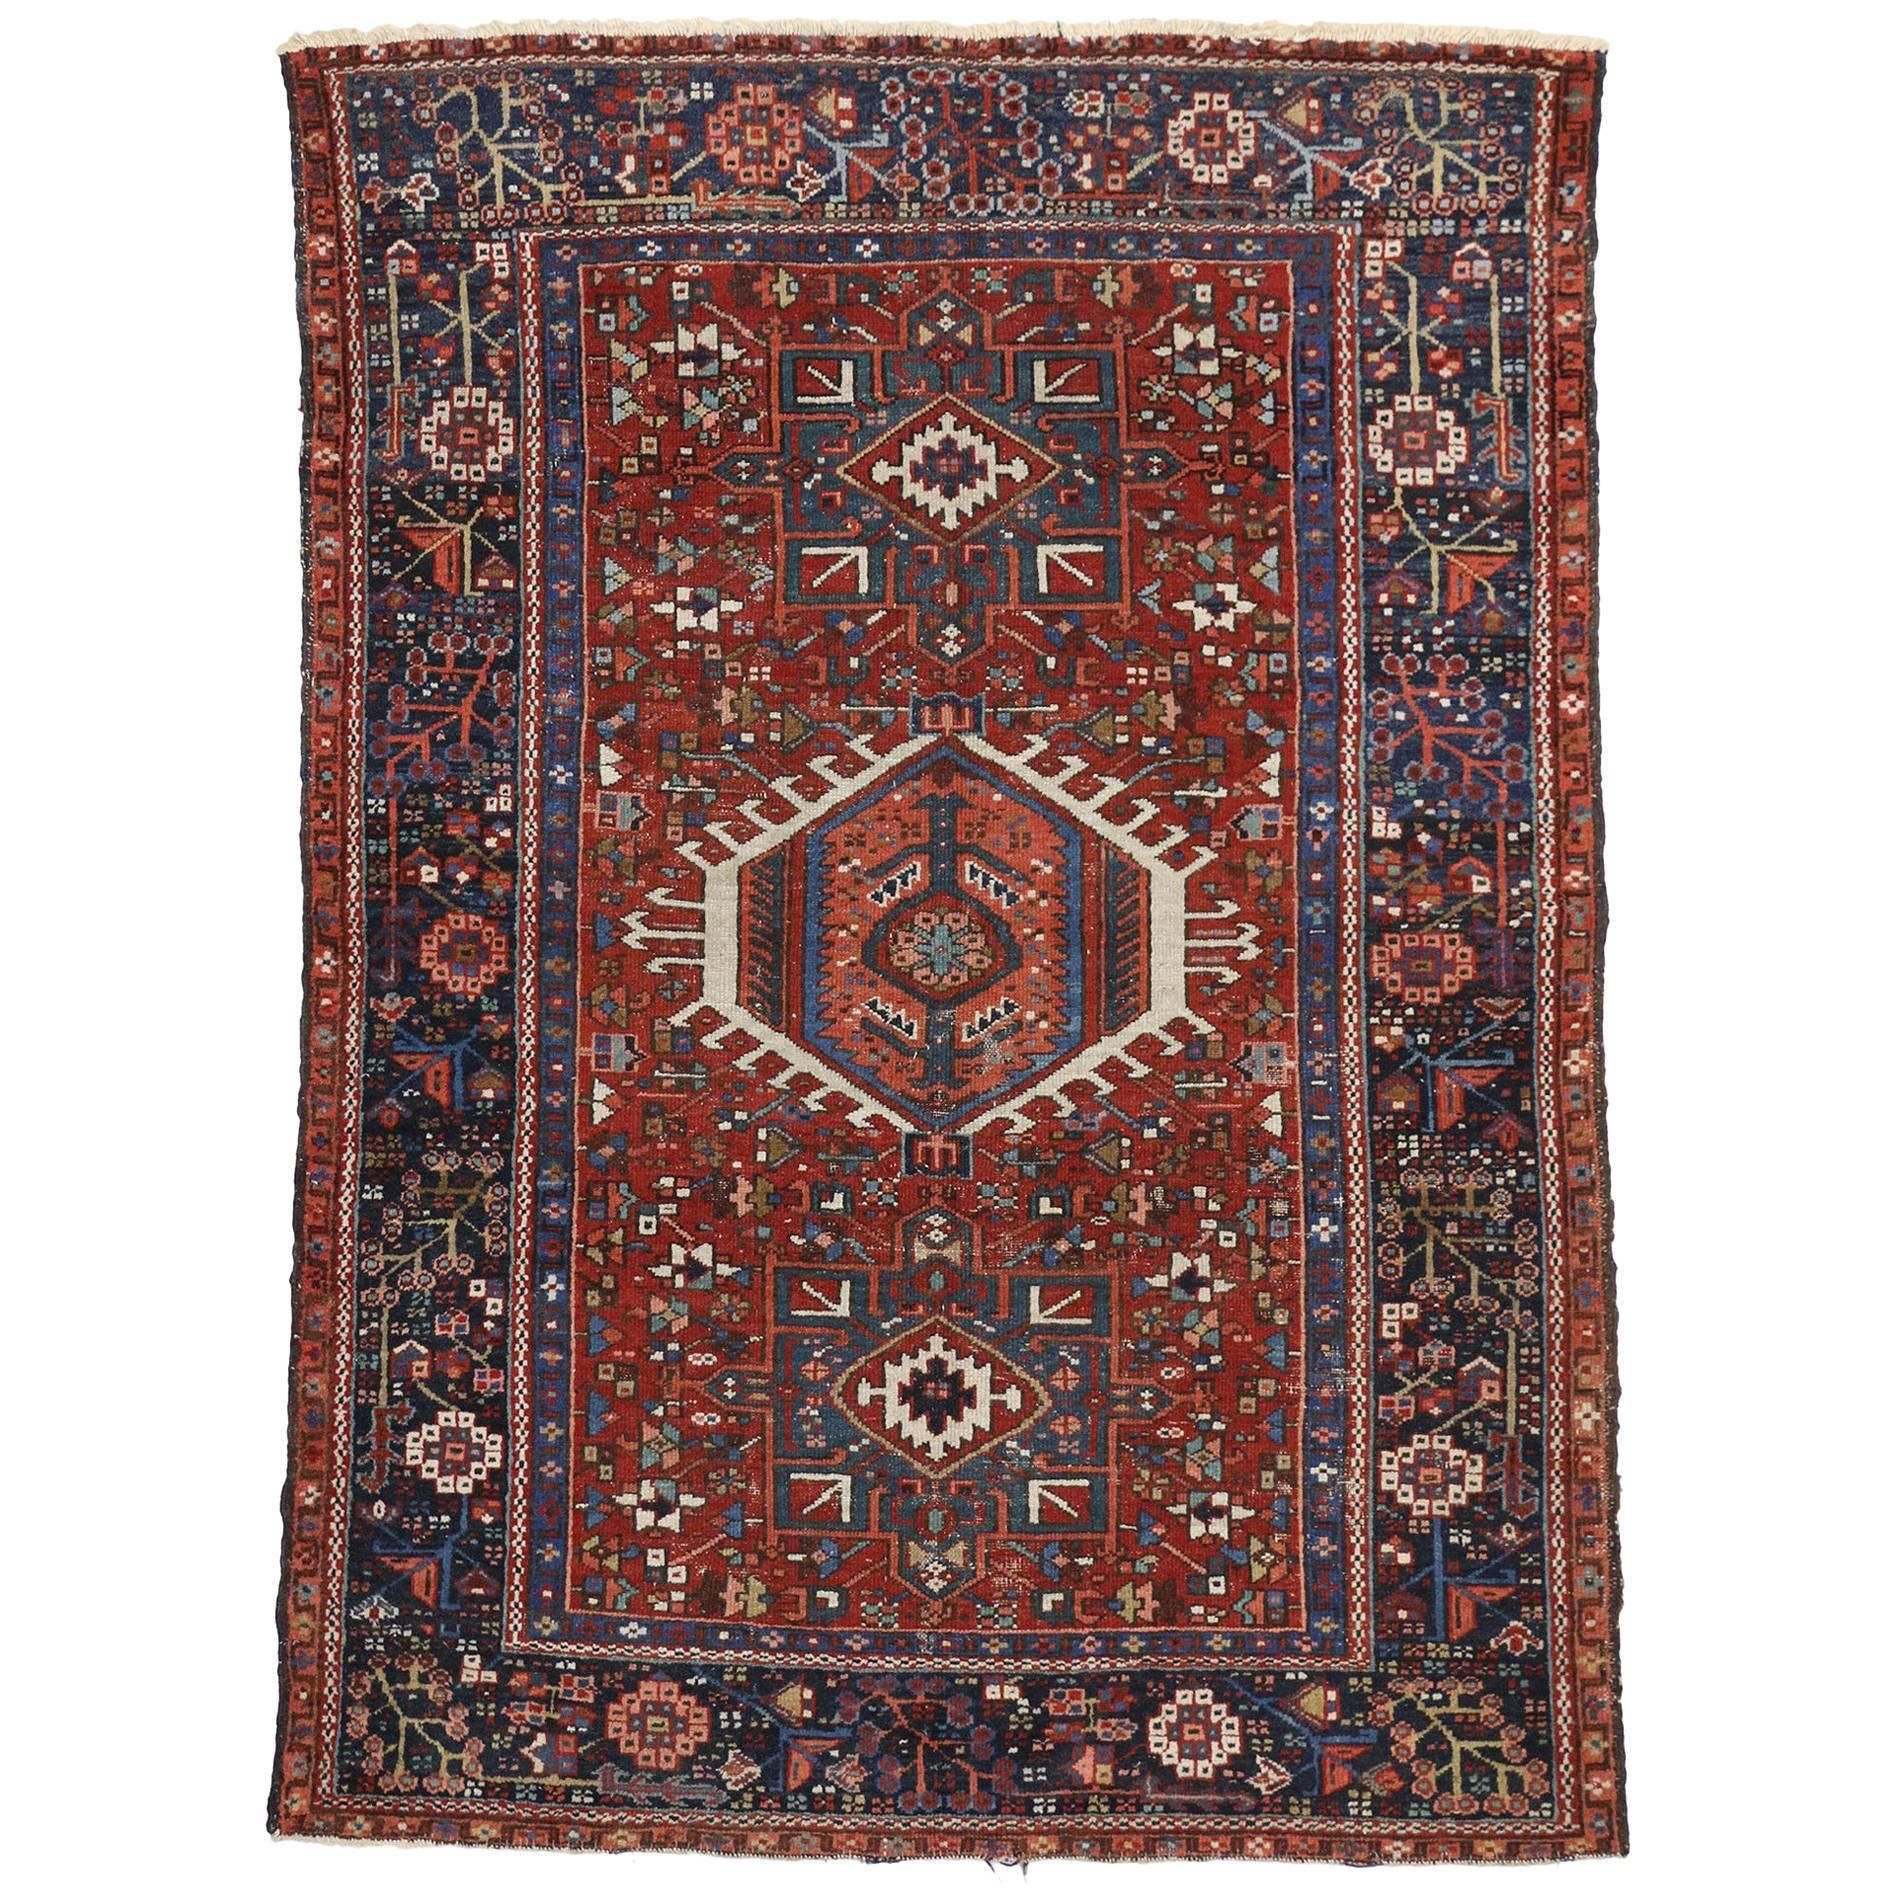 Antique Persian Heriz Rug With Tribal Style, Study Or Home Office Rug